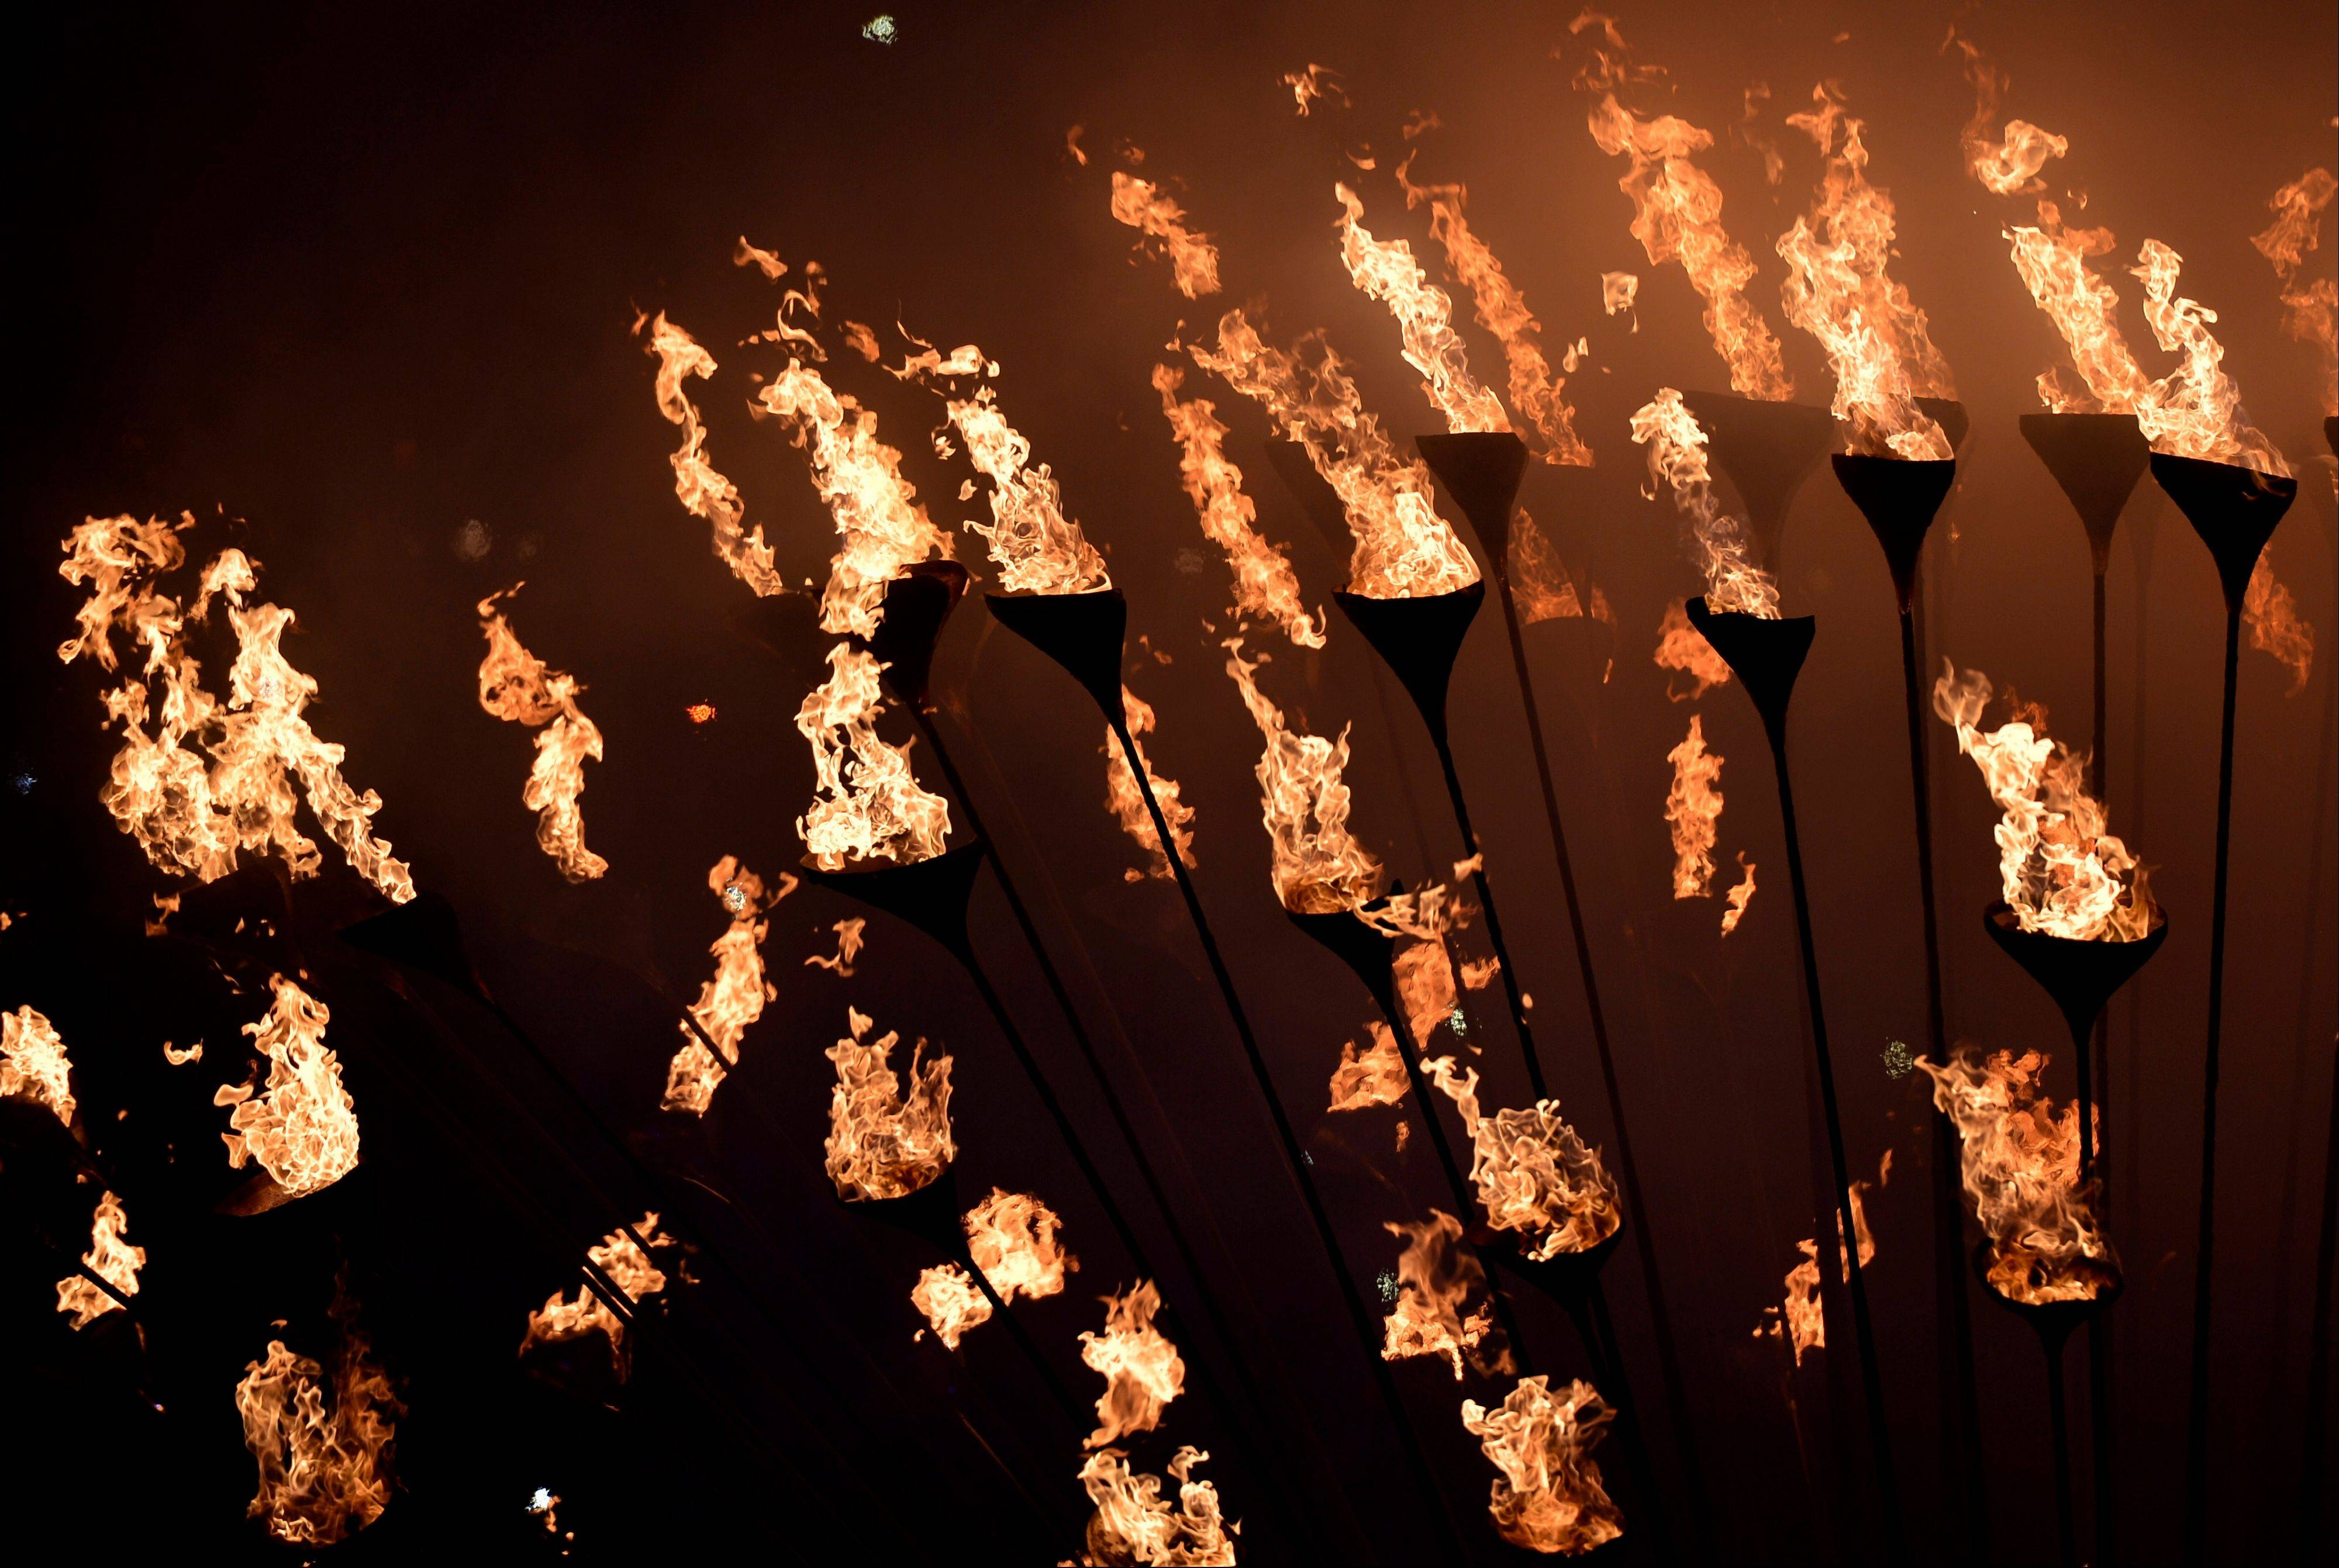 The cauldron burns during the Closing Ceremony at the 2012 Summer Olympics